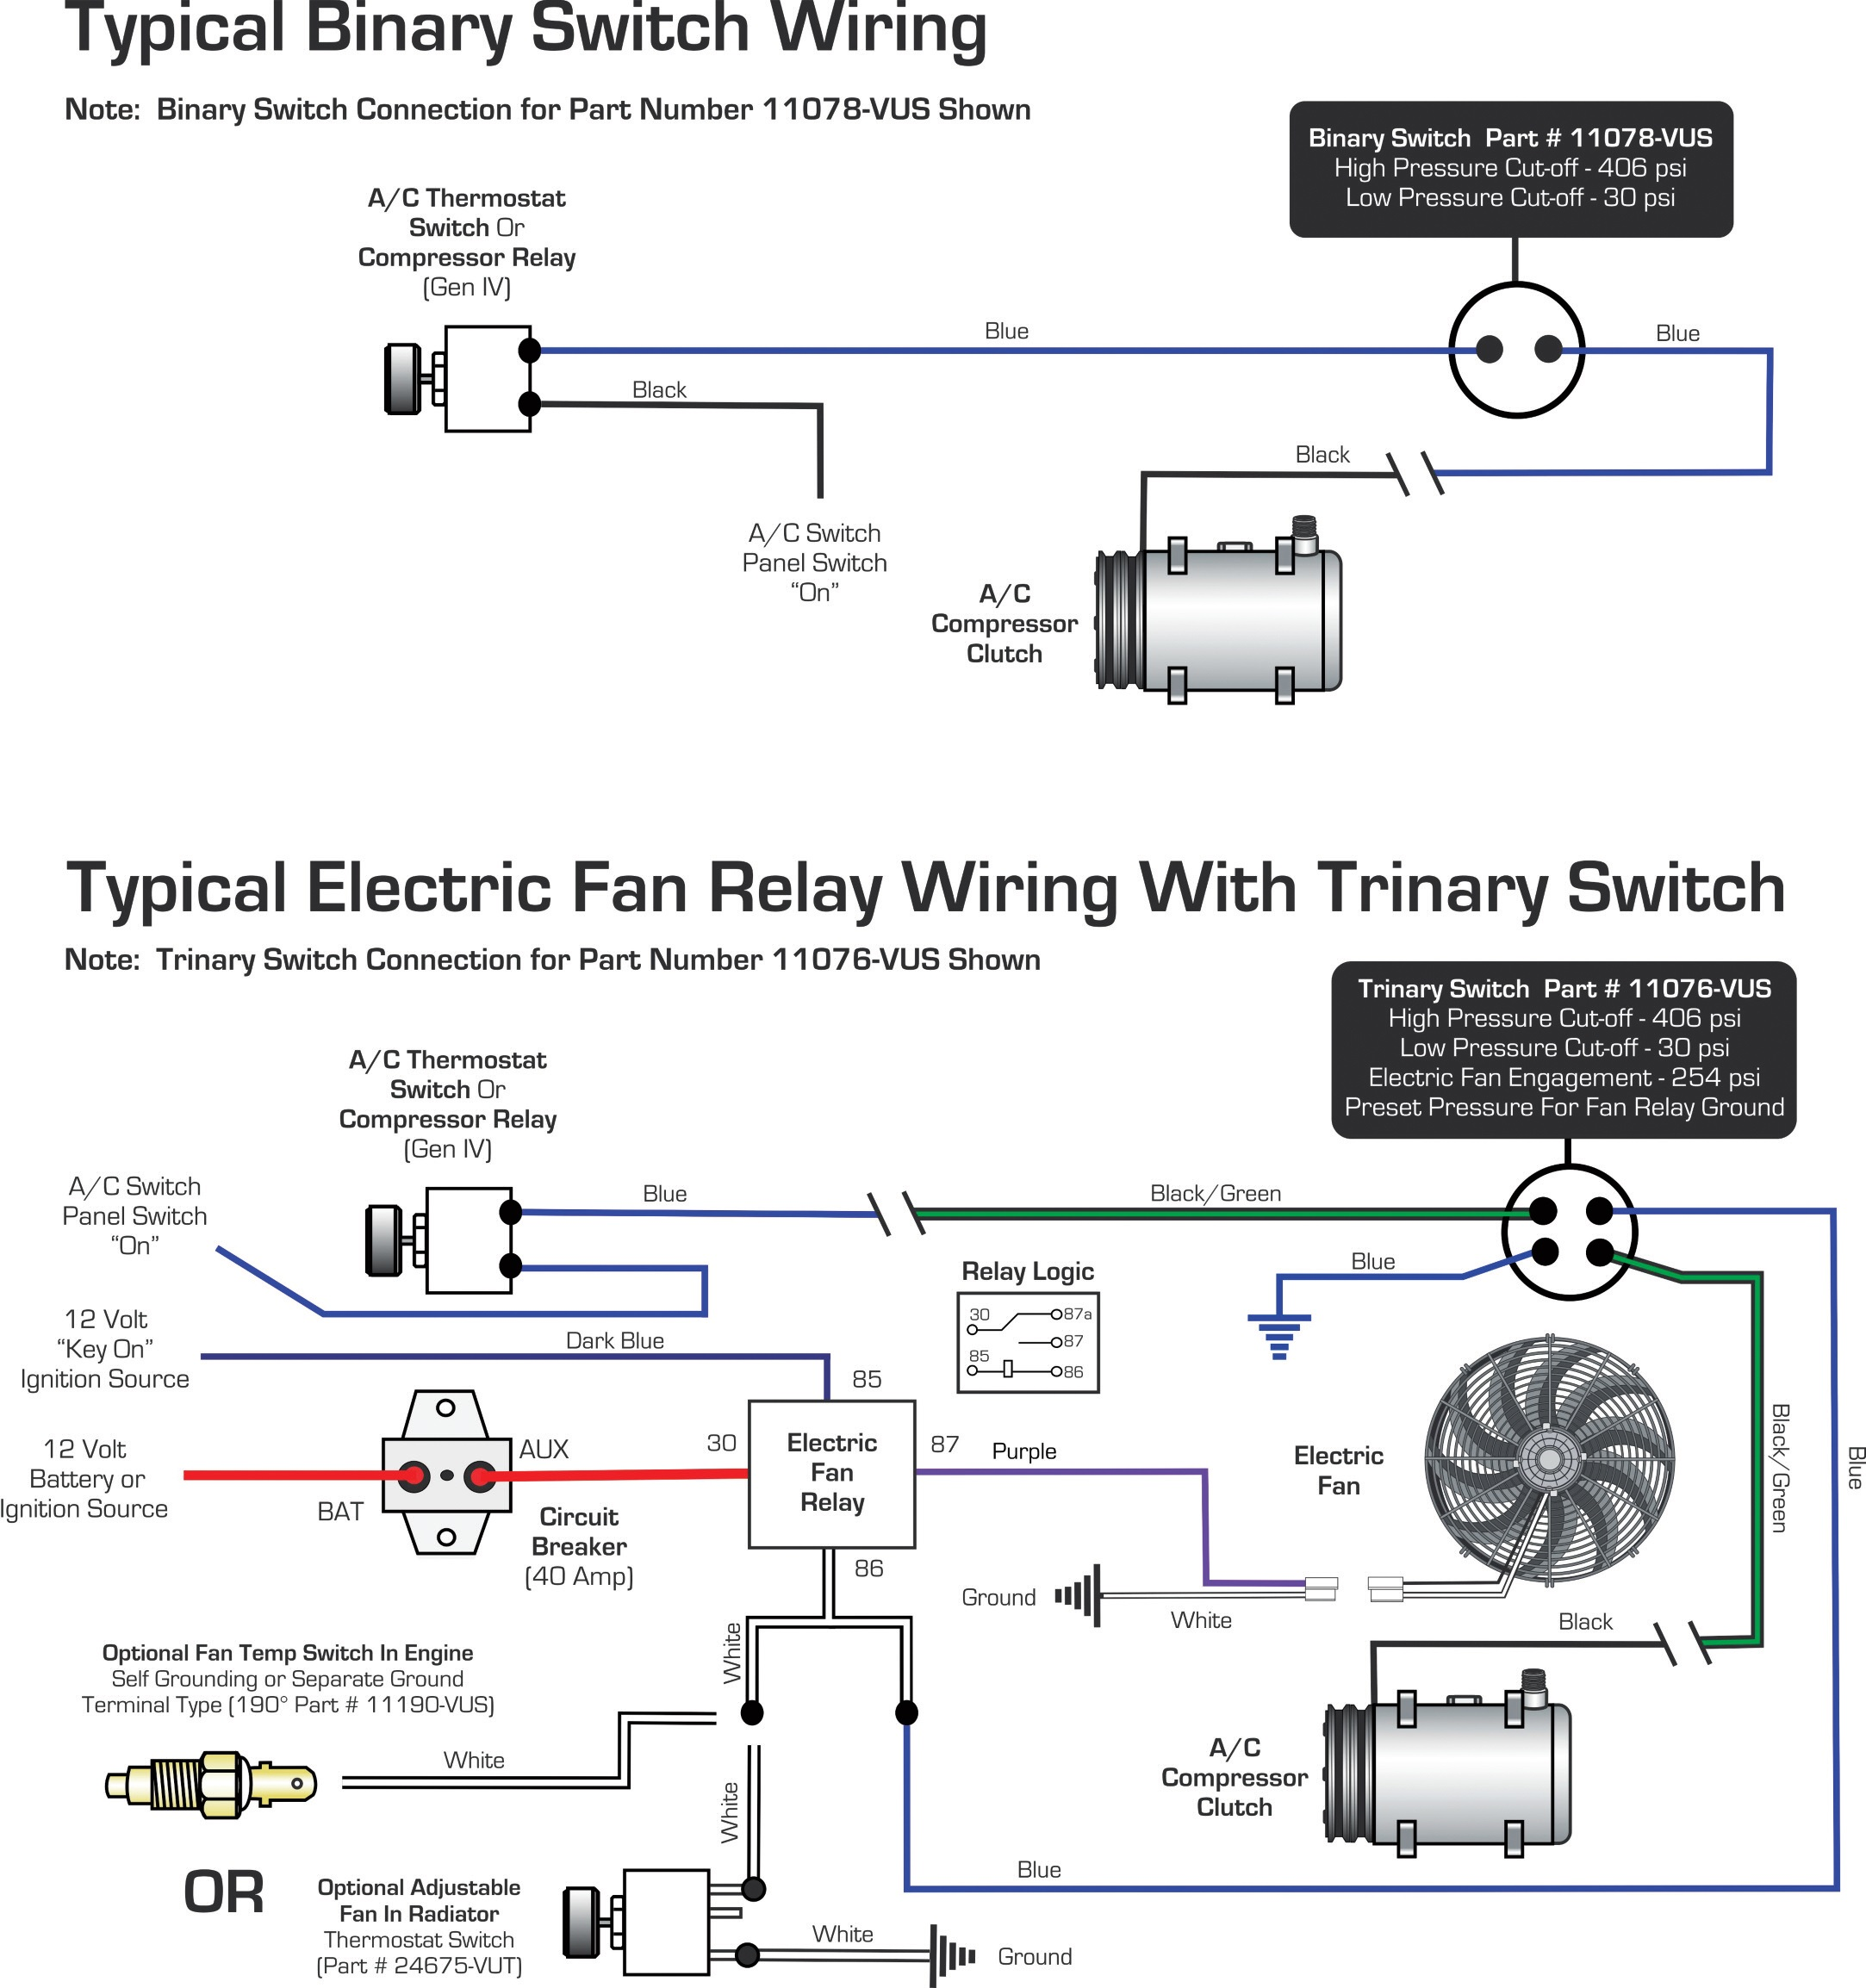 automotive electric fan wiring diagram appradio 2 vintage air blog archive diagrams binary switch trinary 1